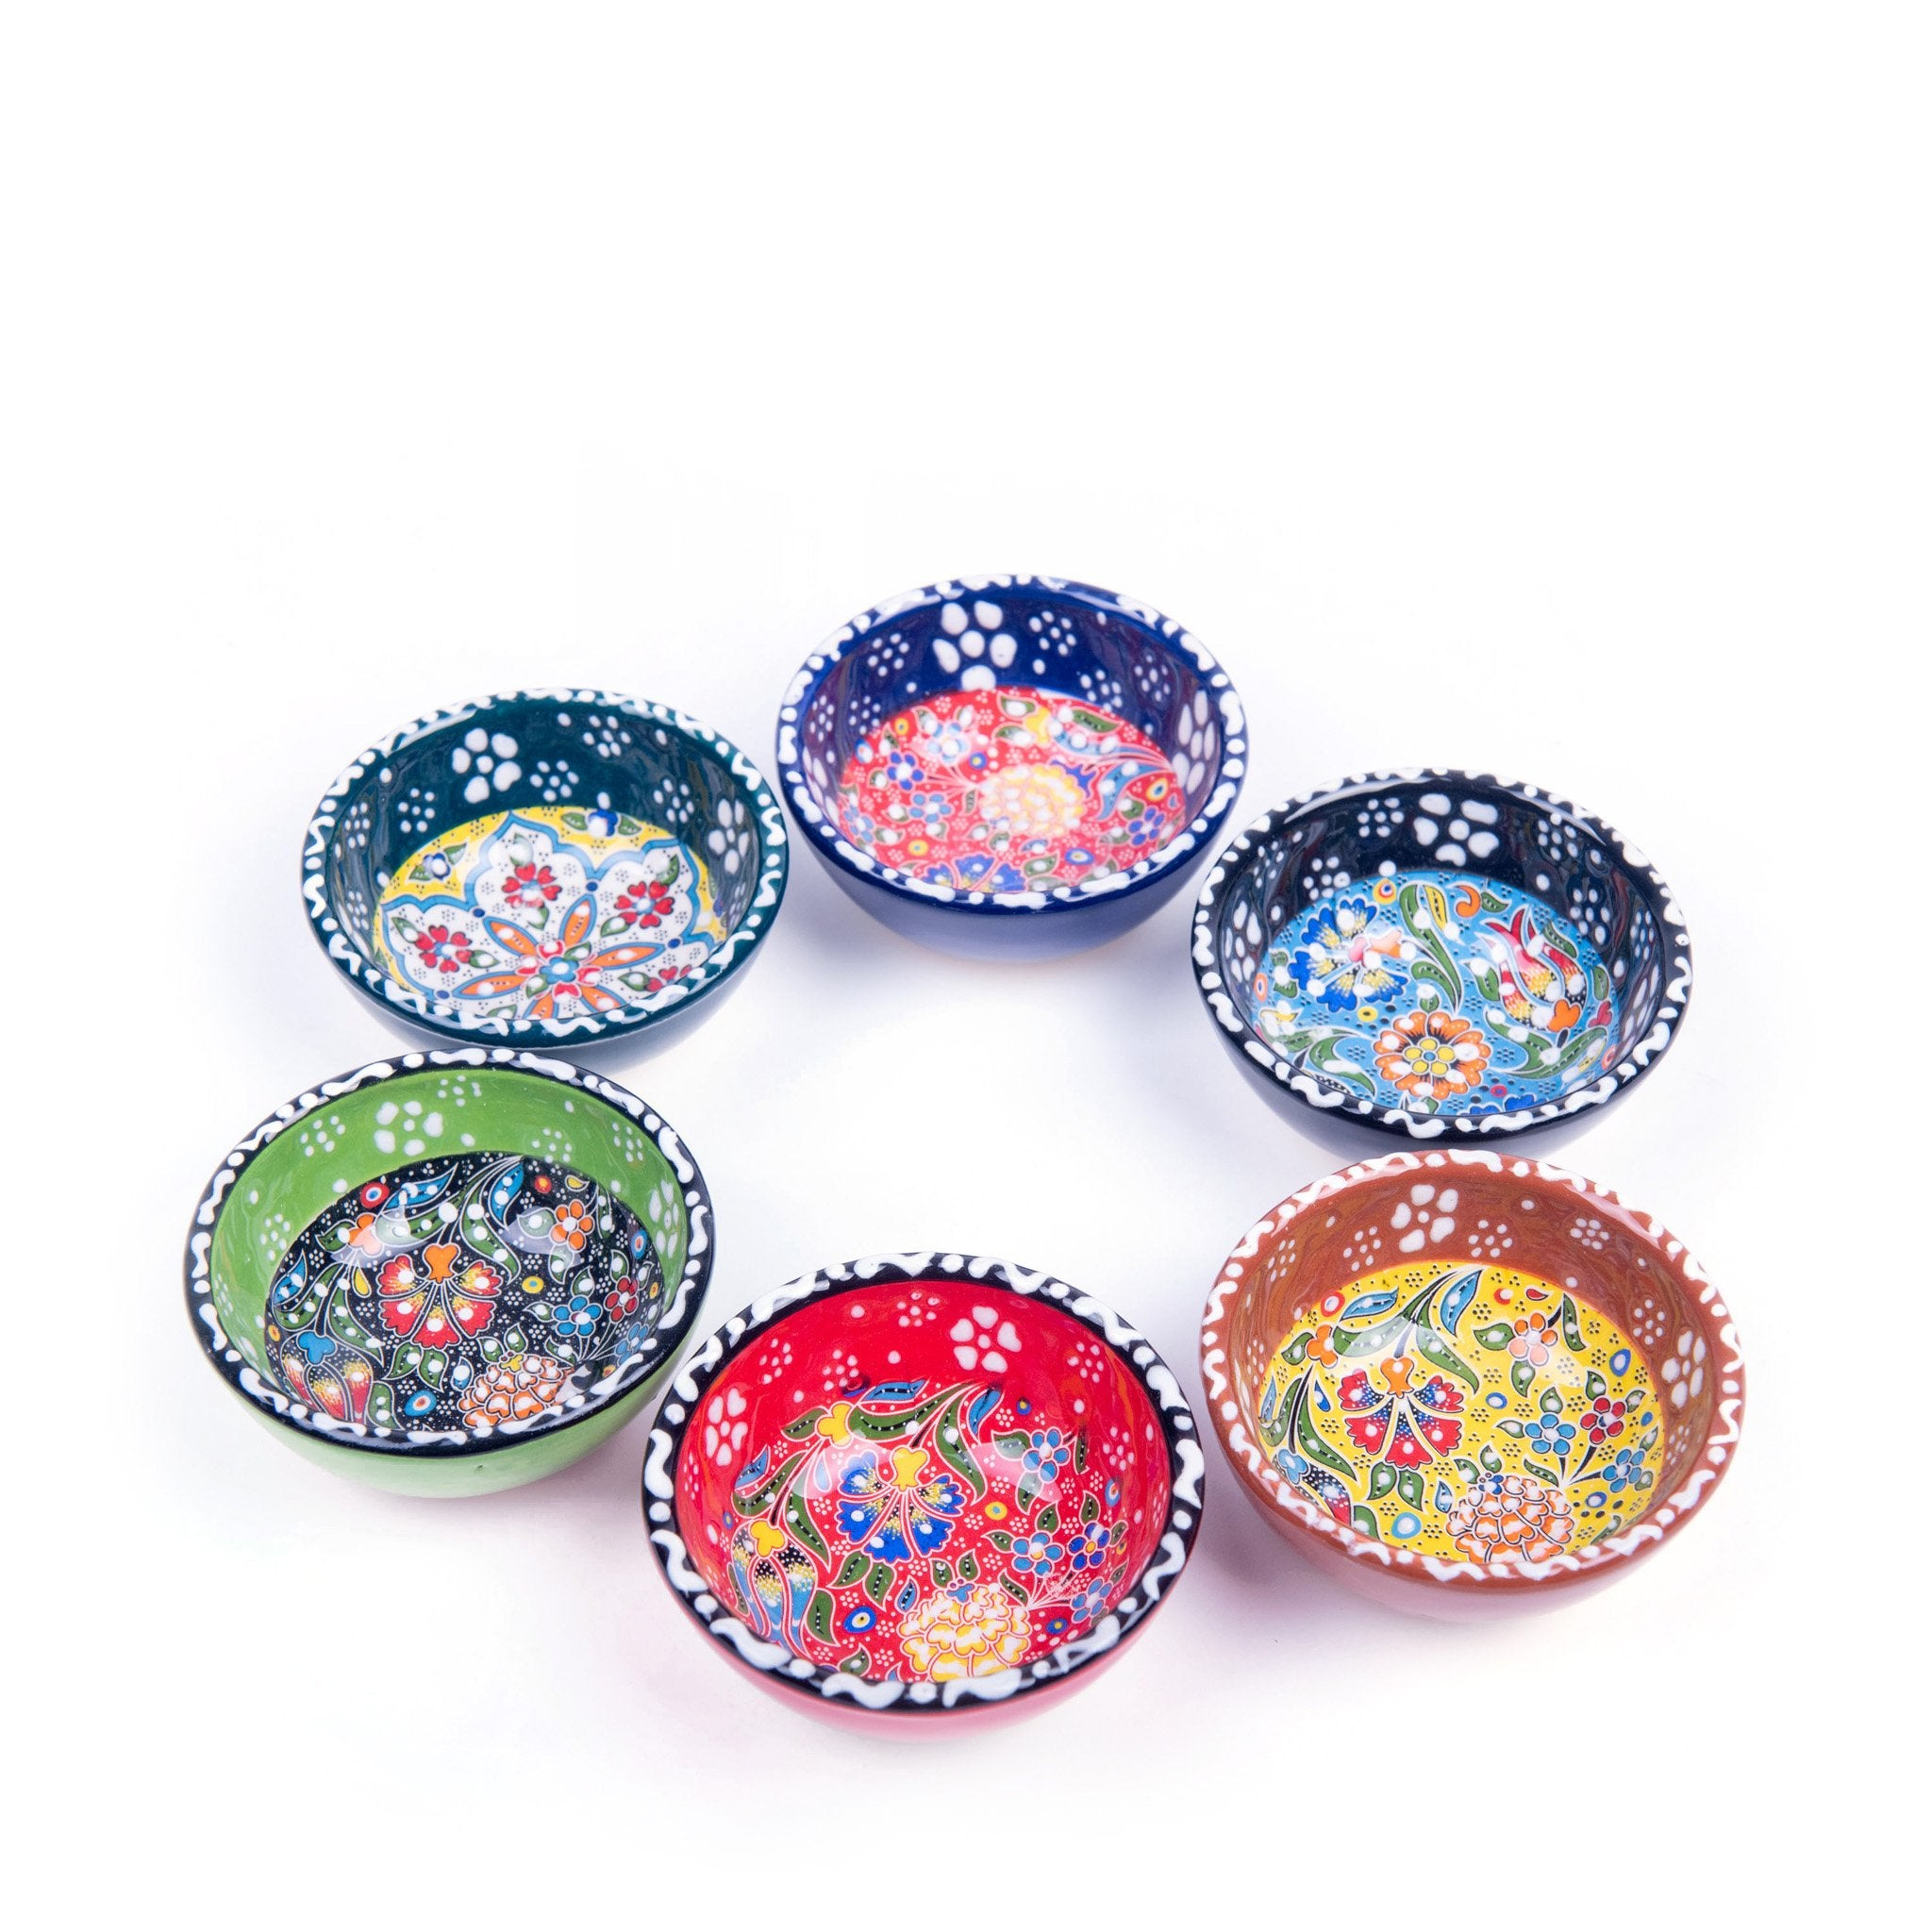 Turkish Ceramic Kutahya Design Handmade Flat Bowl Set Of Six - 8 cm (3.2'')-3